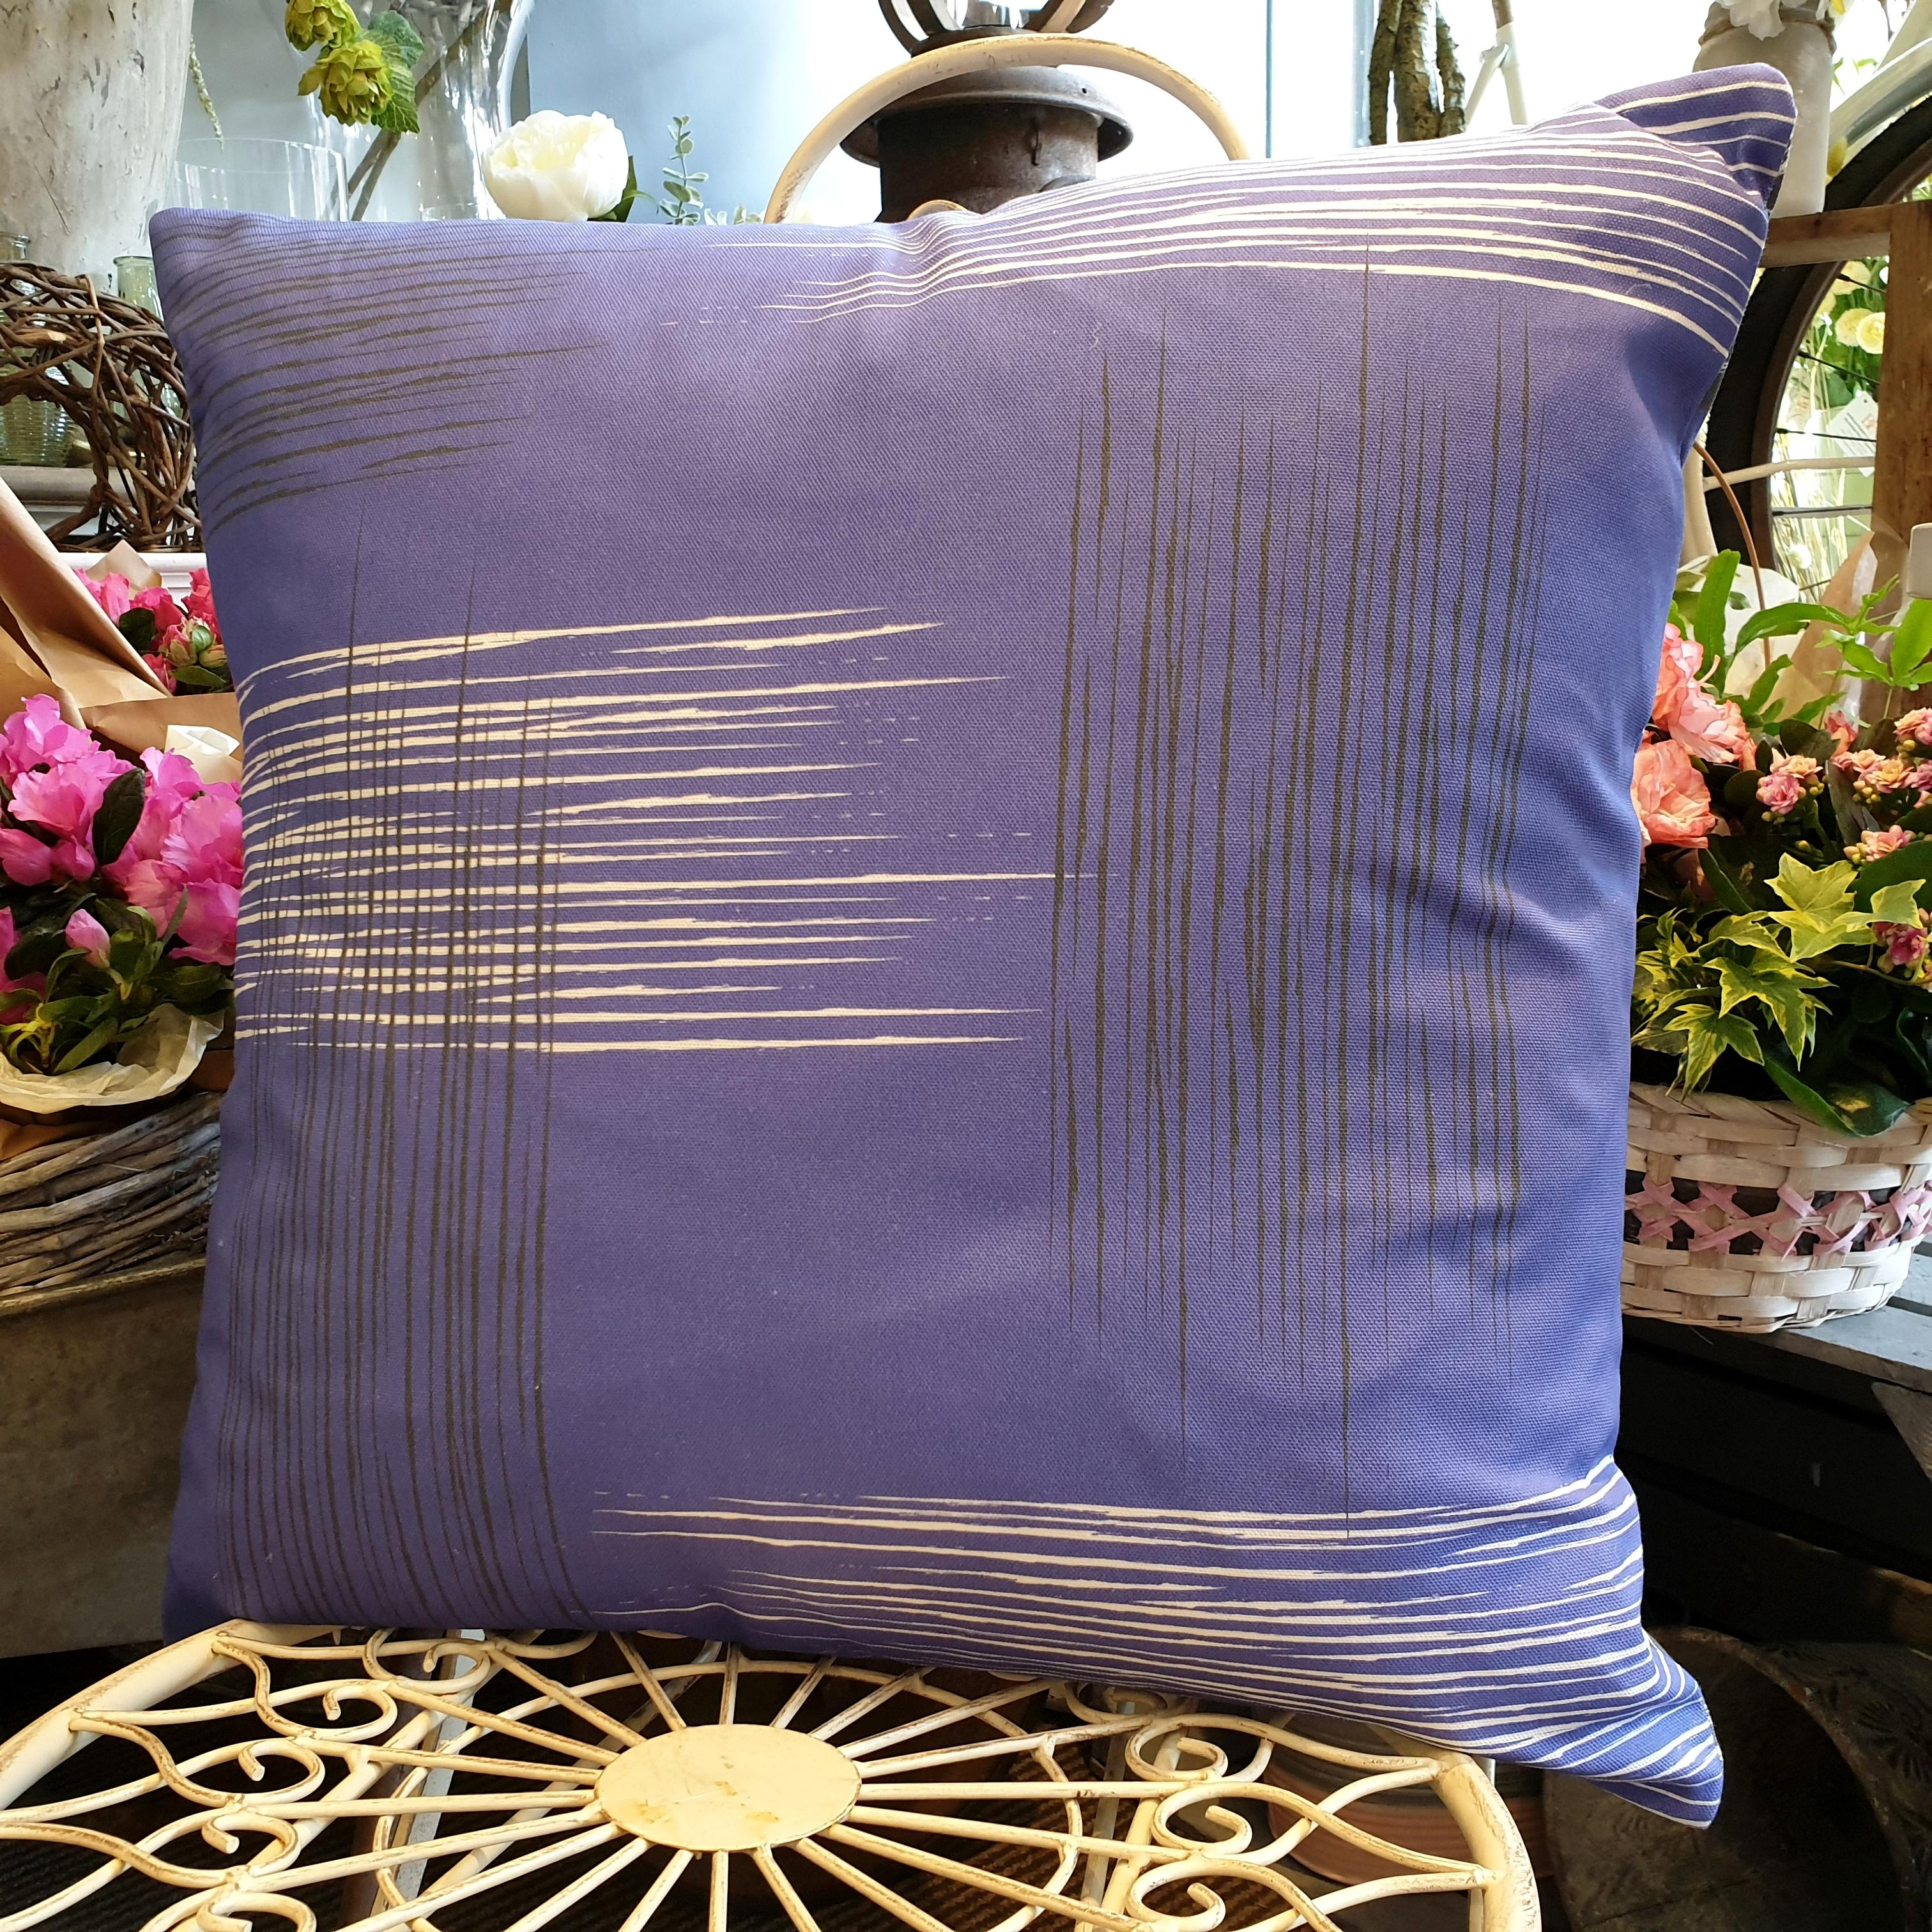 Double-sided violet purple 51cm square retro themed cushion with artistic grey and white shards designed by thetinkan. Available with an optional luxury cushion inner pad. VIEW PRODUCT >>